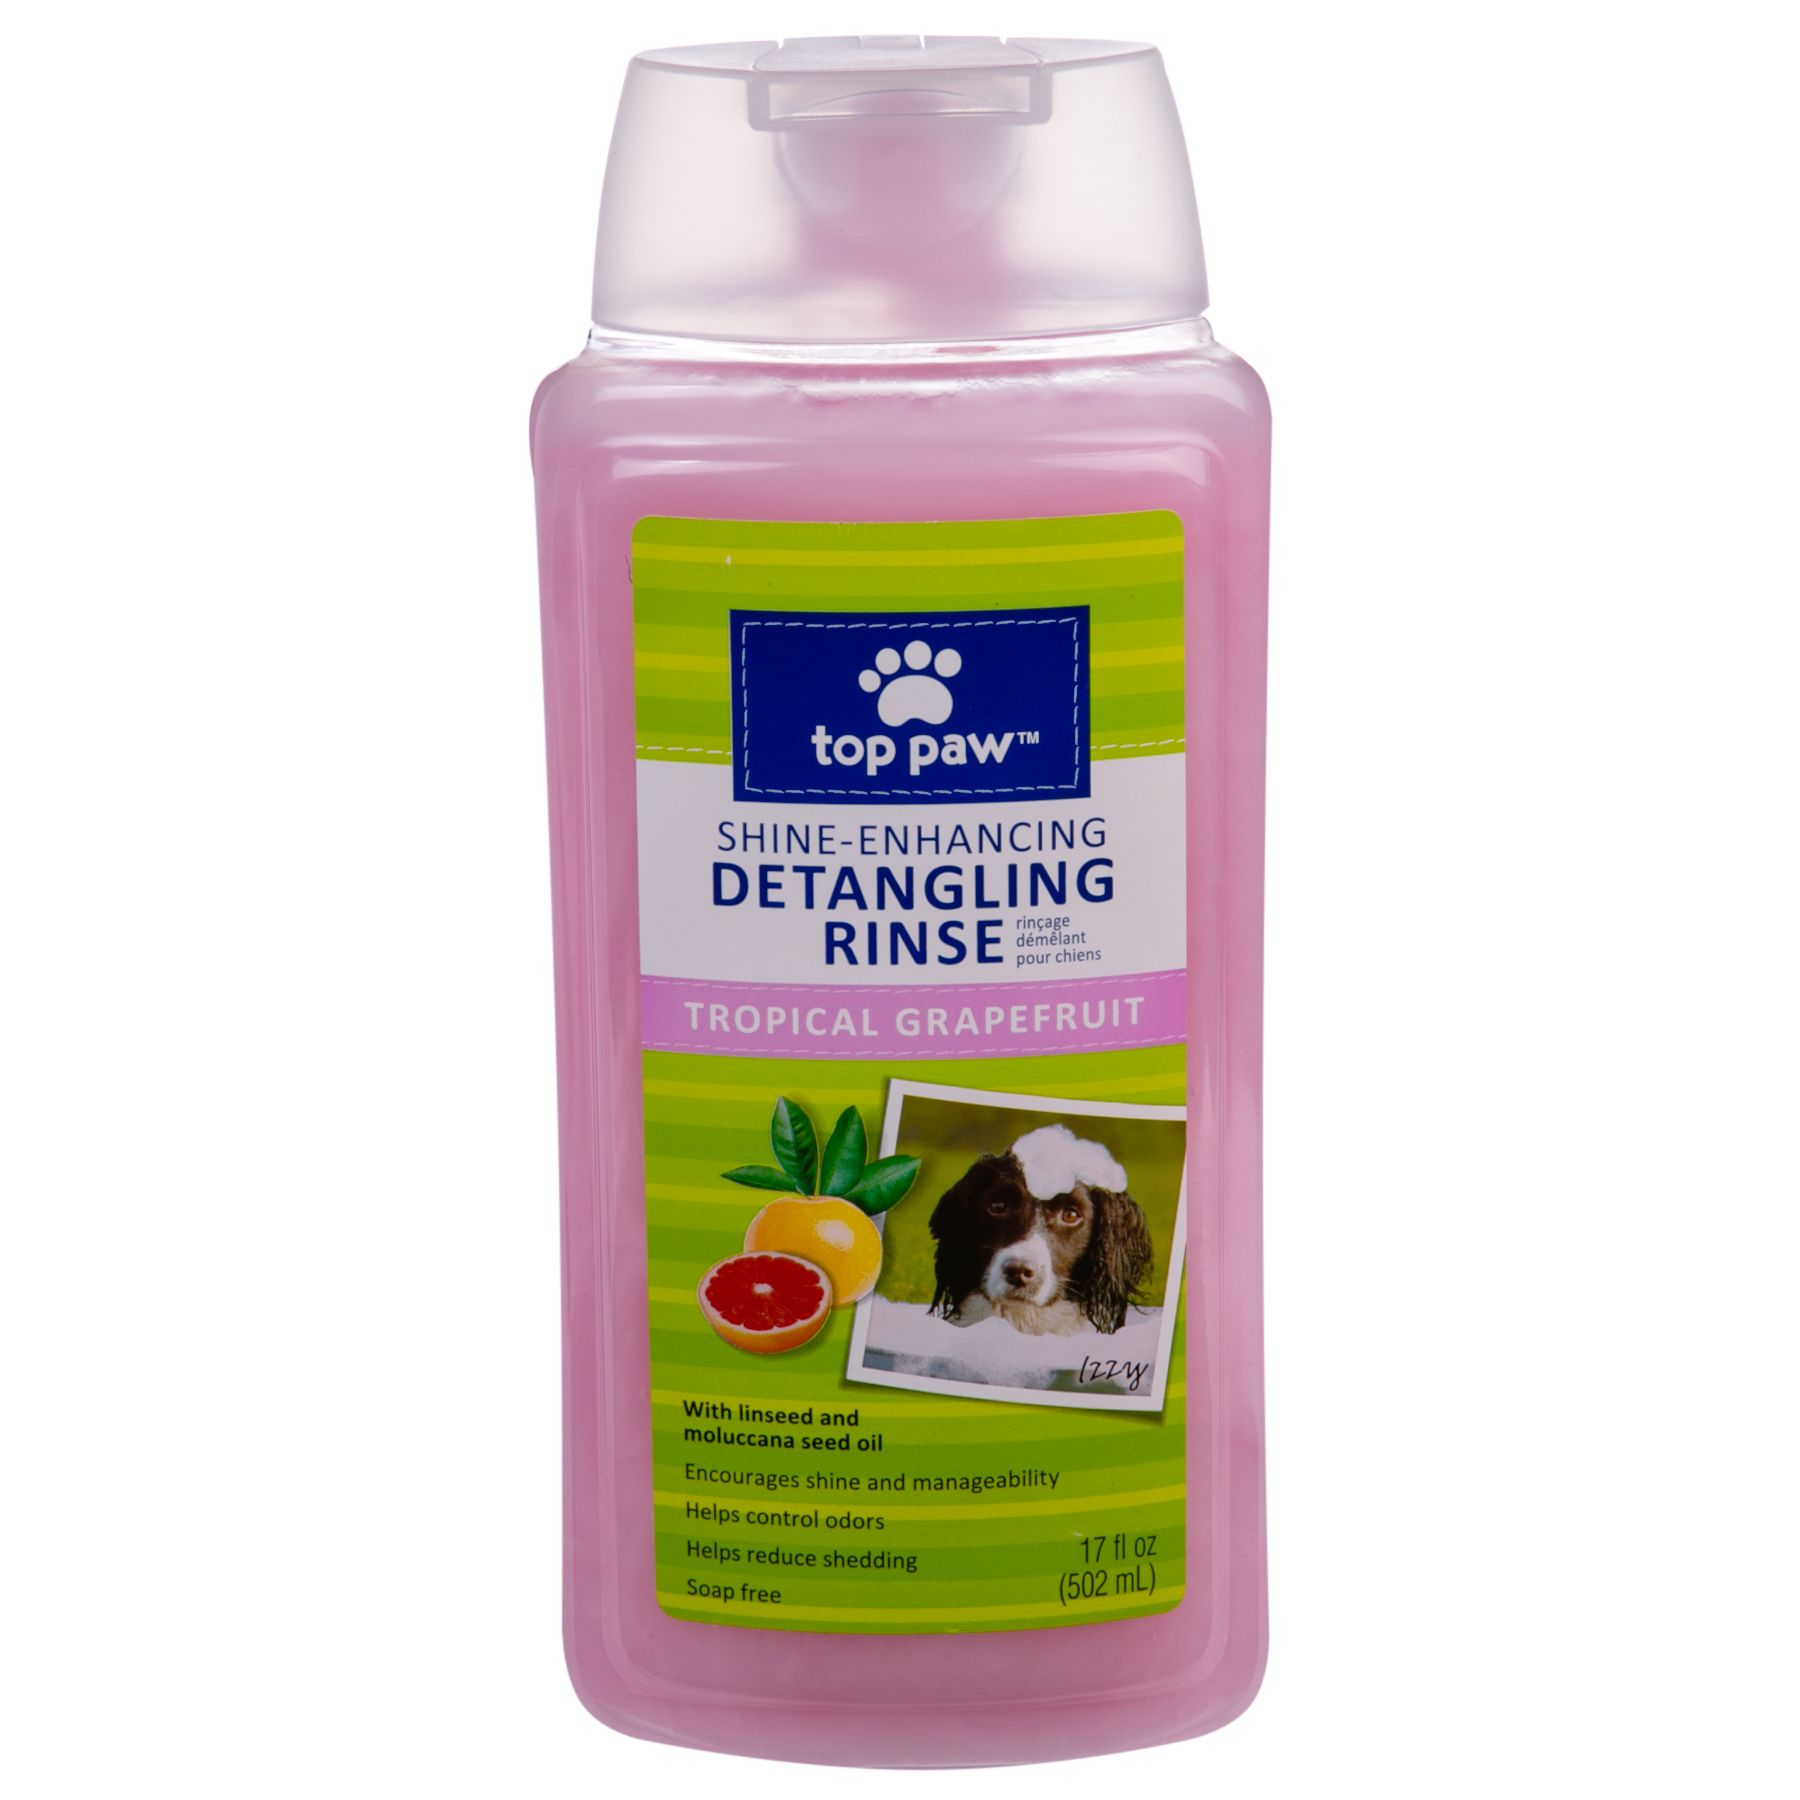 Top Paw, Tropical Grapefruit Detangling Dog Rinse